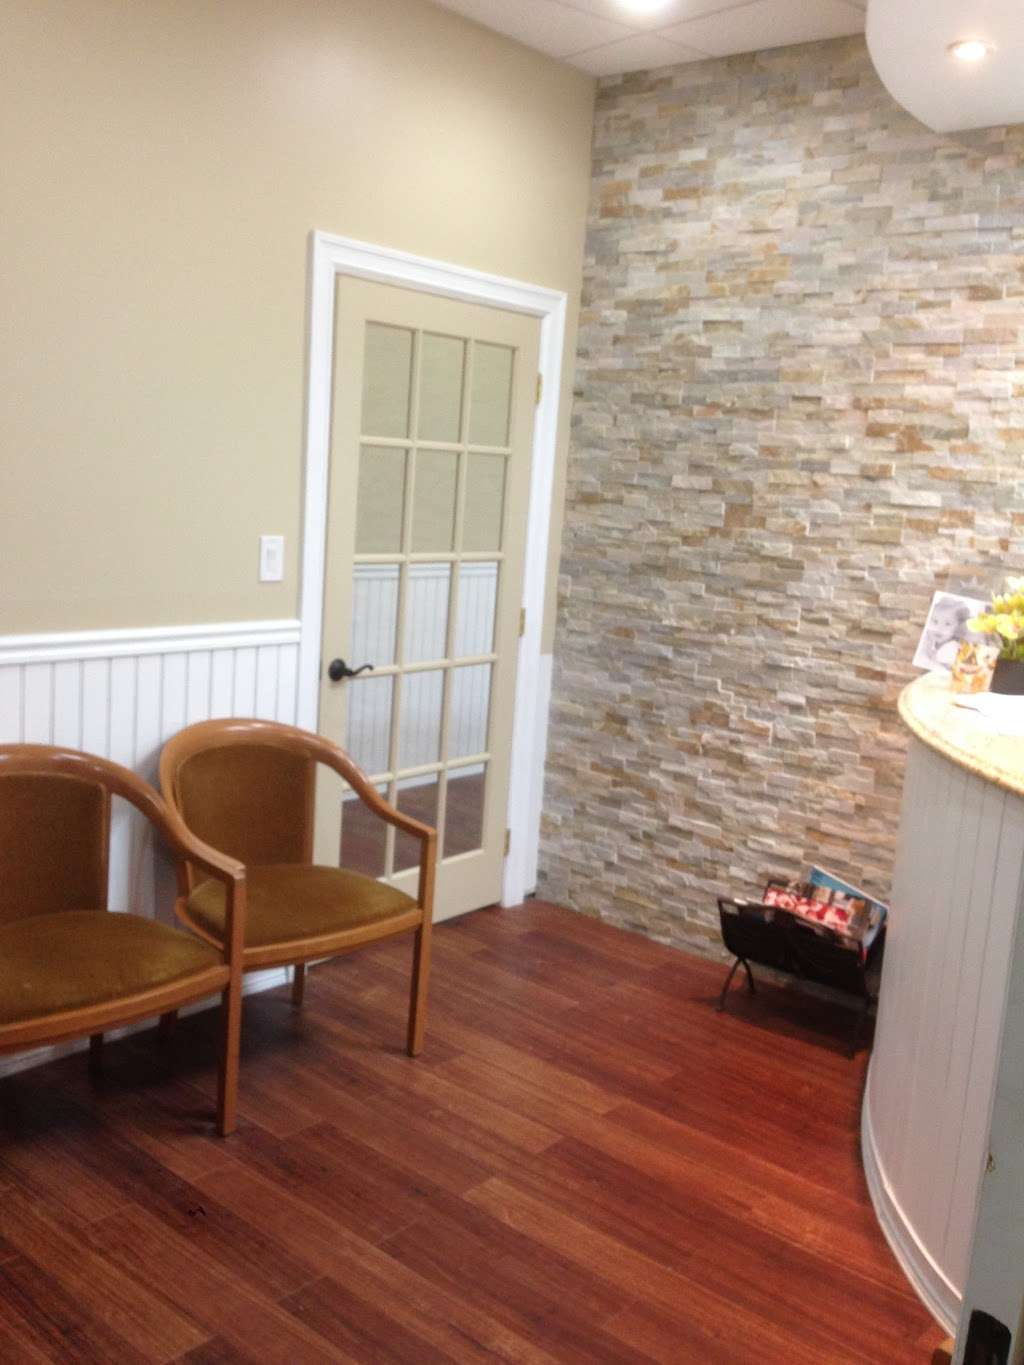 Robert Cukier, DDS - dentist  | Photo 1 of 10 | Address: 76-01 Myrtle Ave, Glendale, NY 11385, USA | Phone: (718) 386-2655